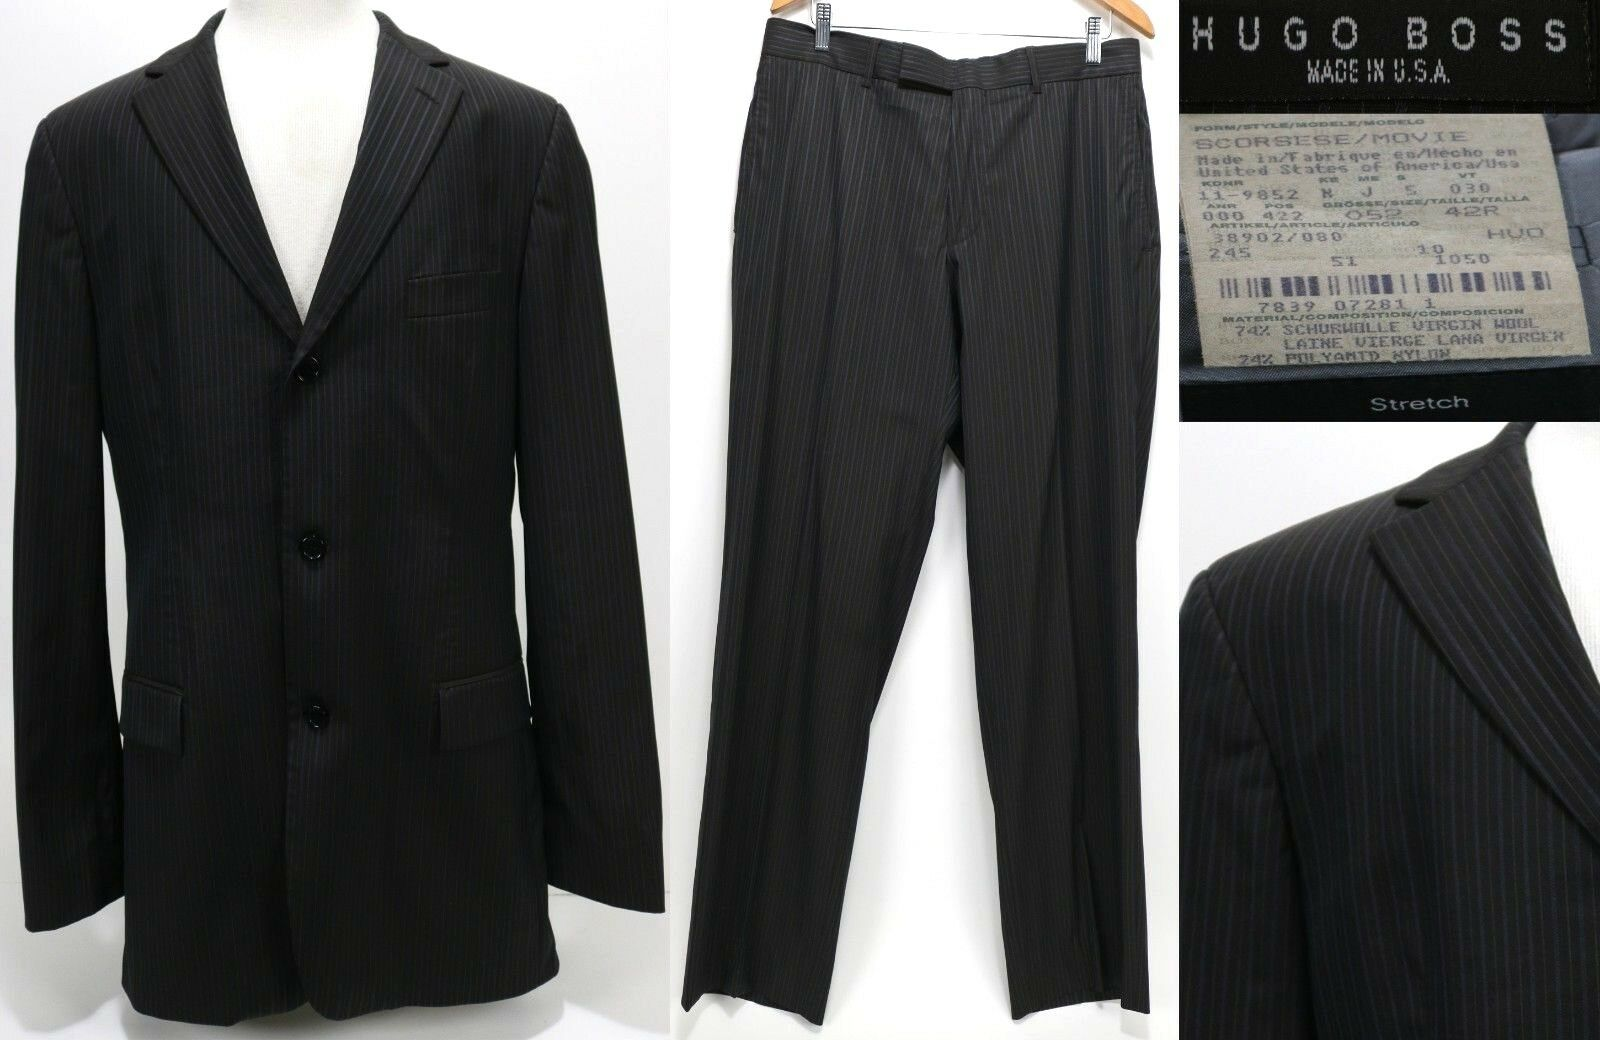 Hugo Boss Men's Suit  Scorsese Movie Size 42R Striped Navy bluee